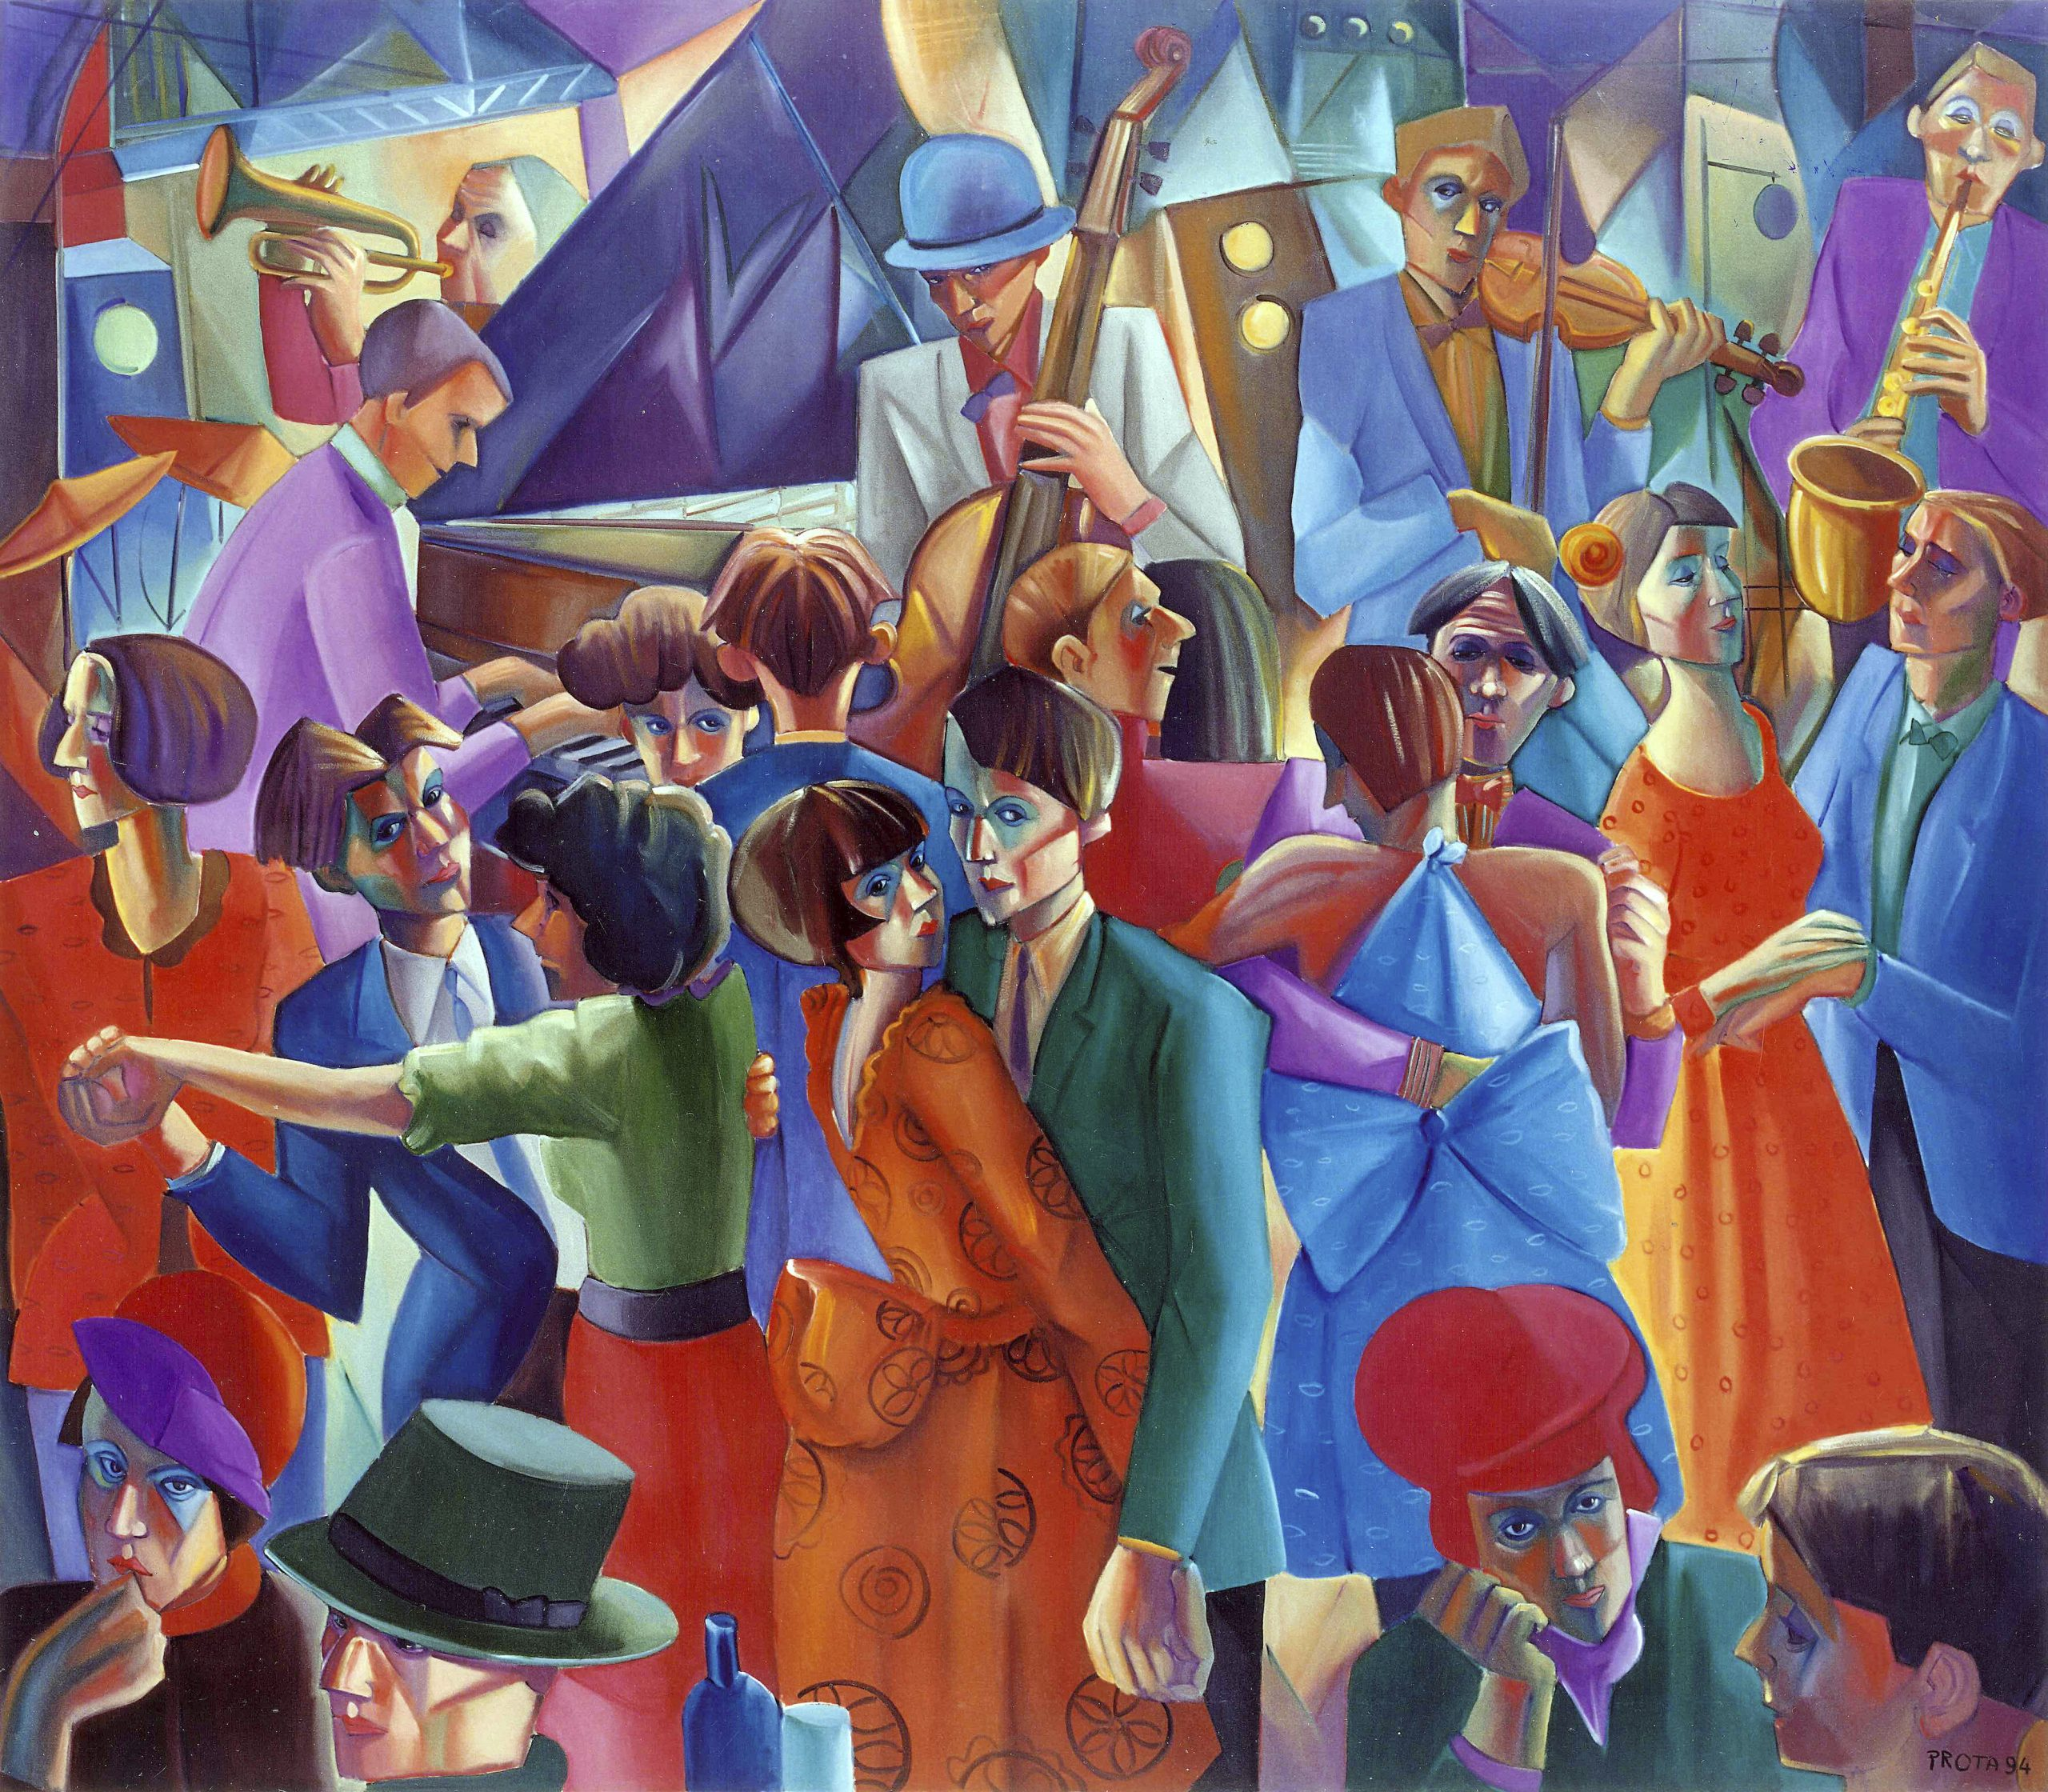 1994 - Night Club - 140x160 cm